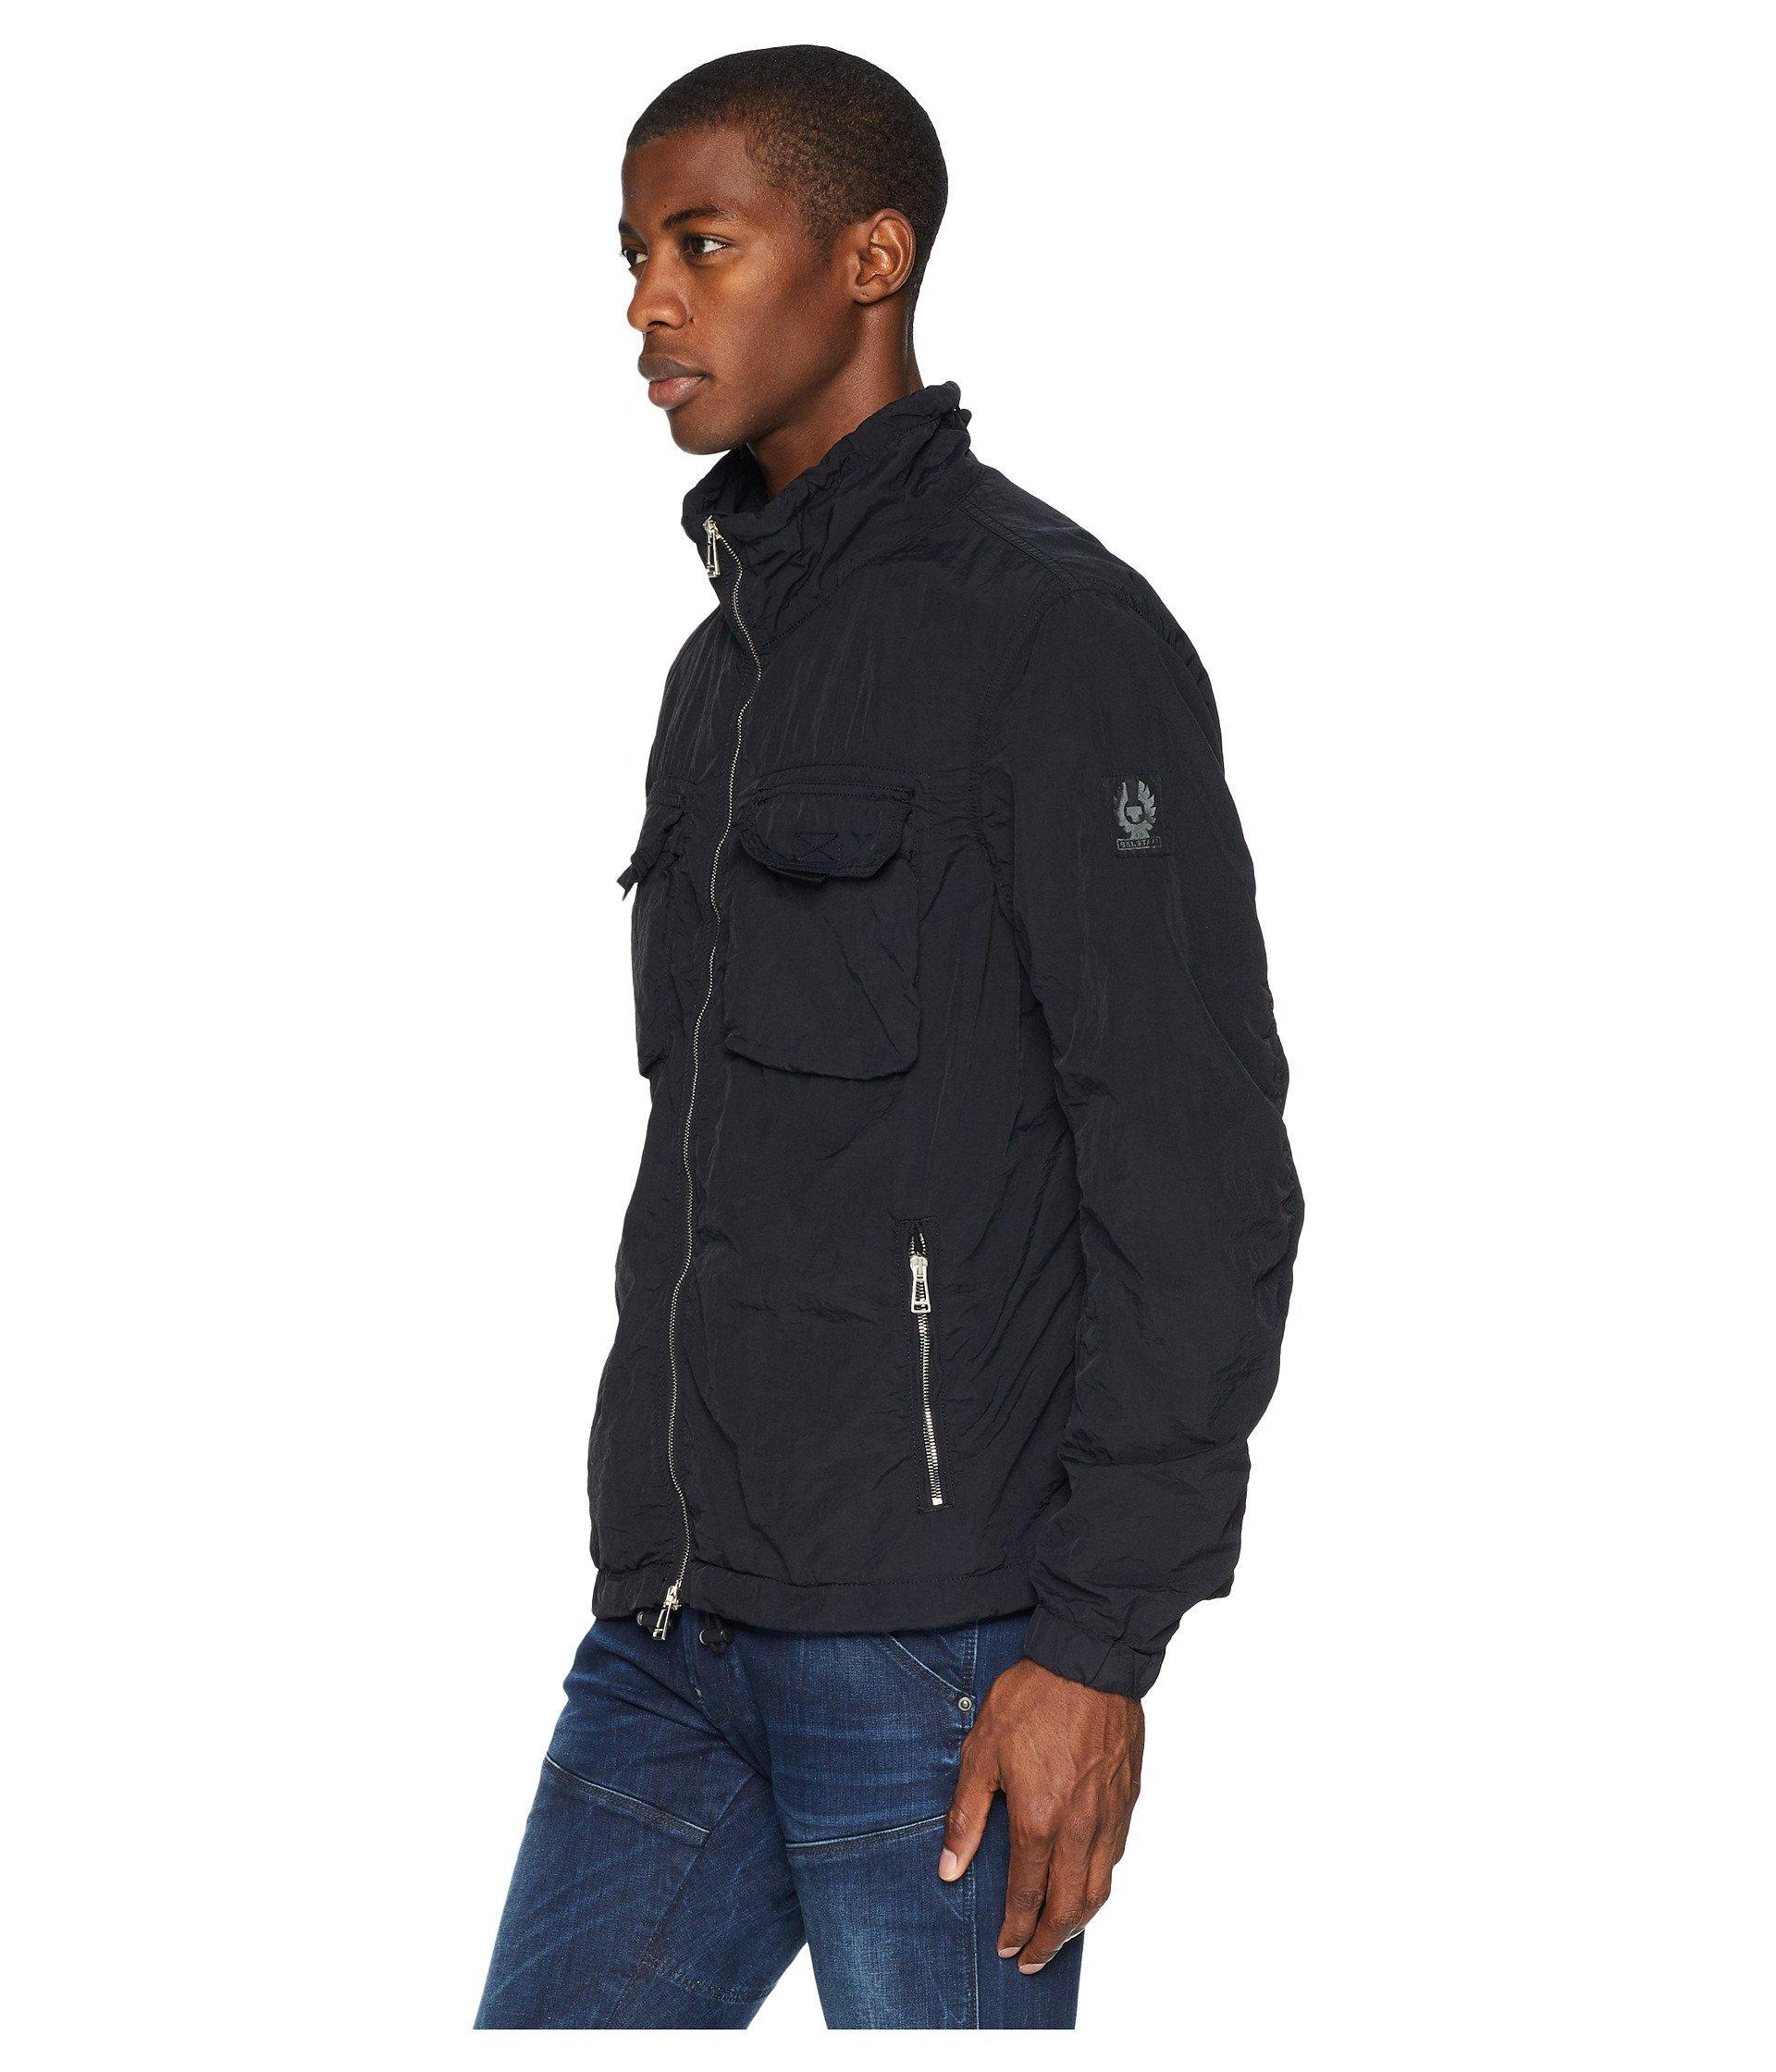 af666396e443 Lyst - Belstaff Pendeen Nylon Jacket in Black for Men